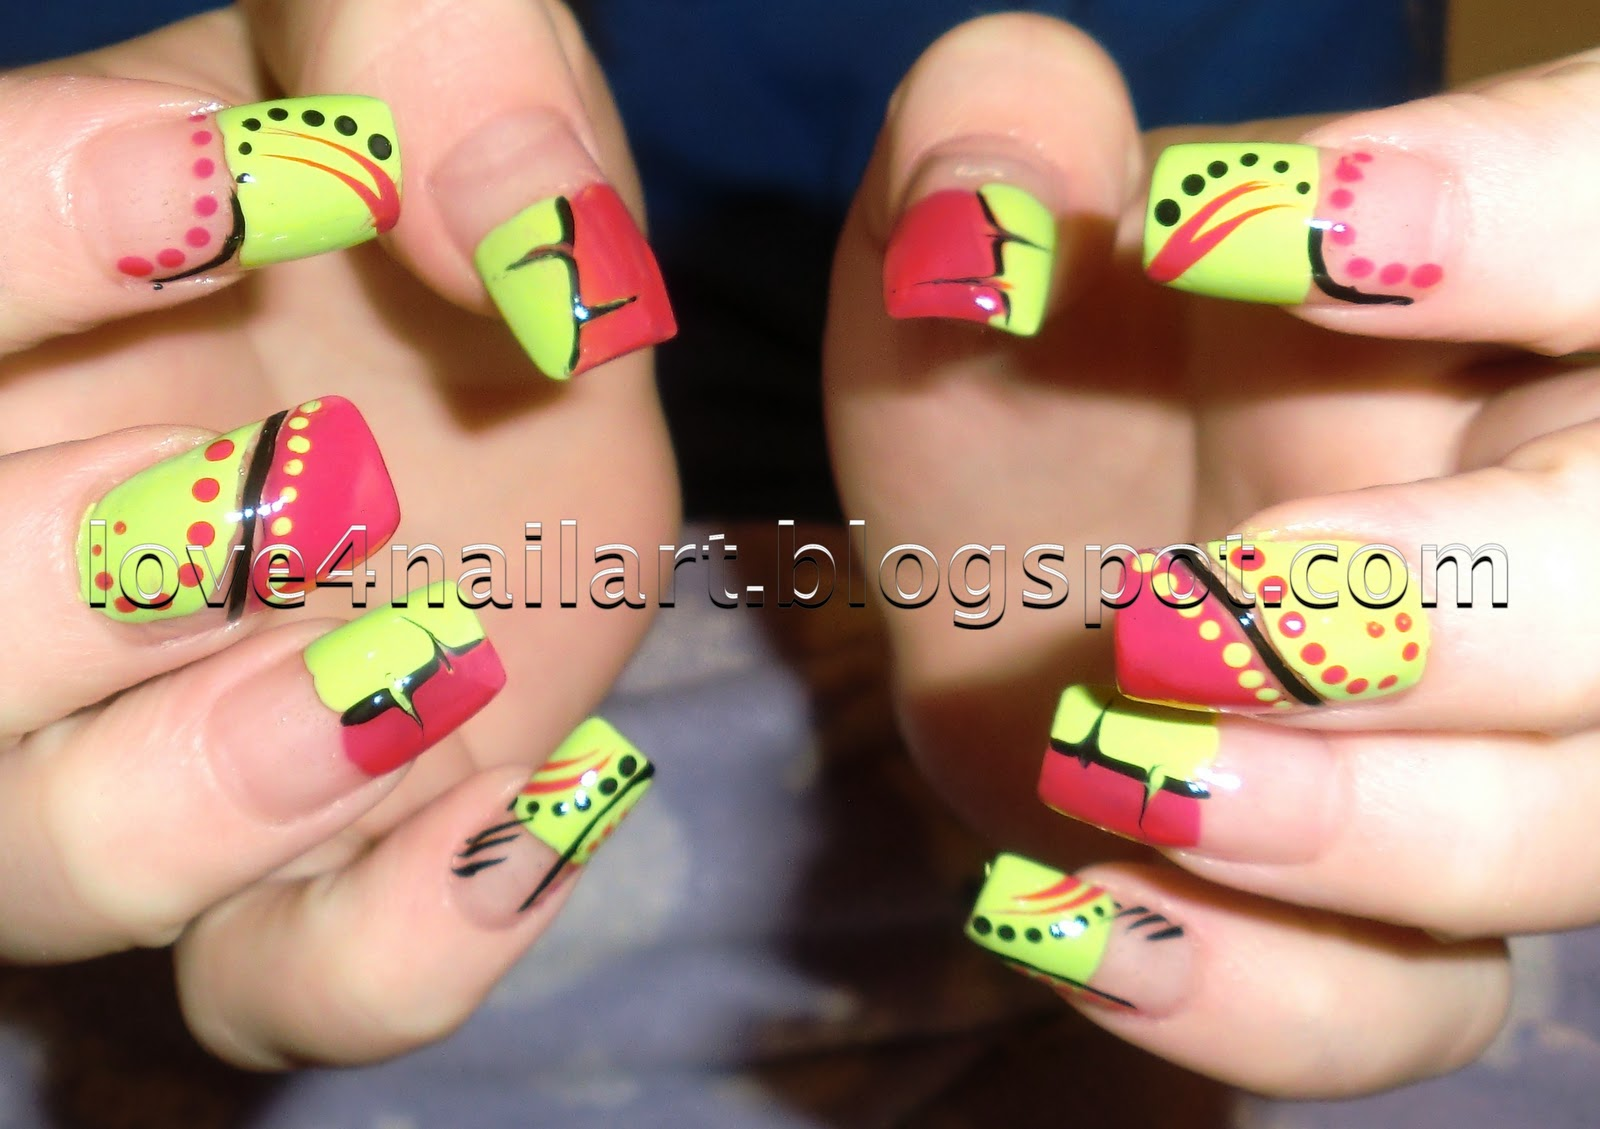 Love4NailArt: Colorful Abstract Nail Art